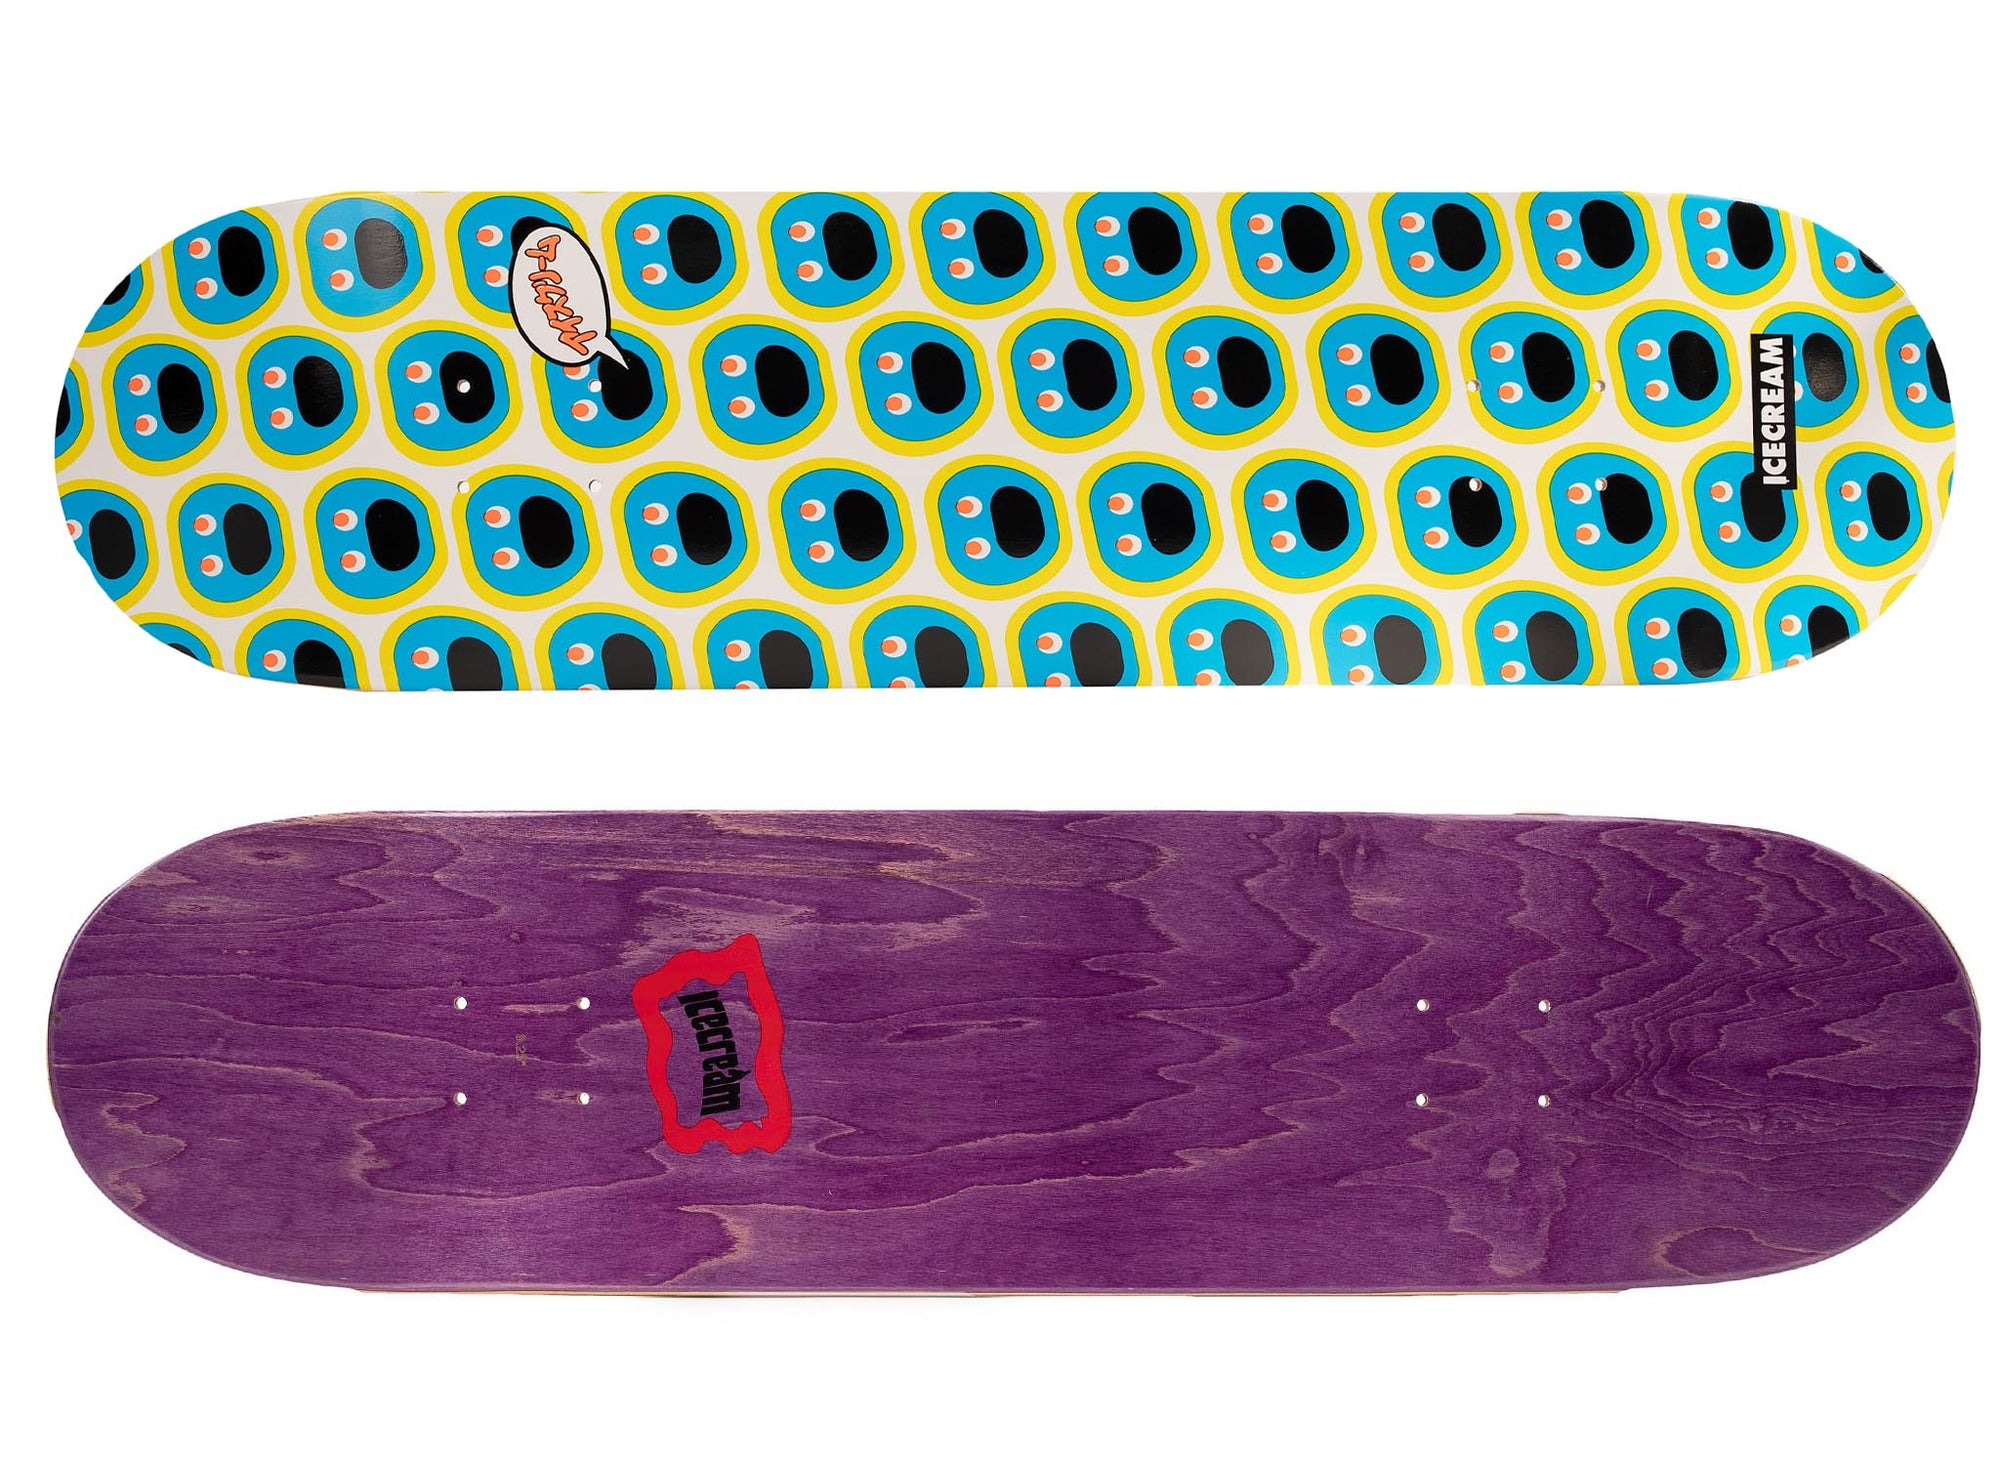 ICE CREAM SKATE DECK